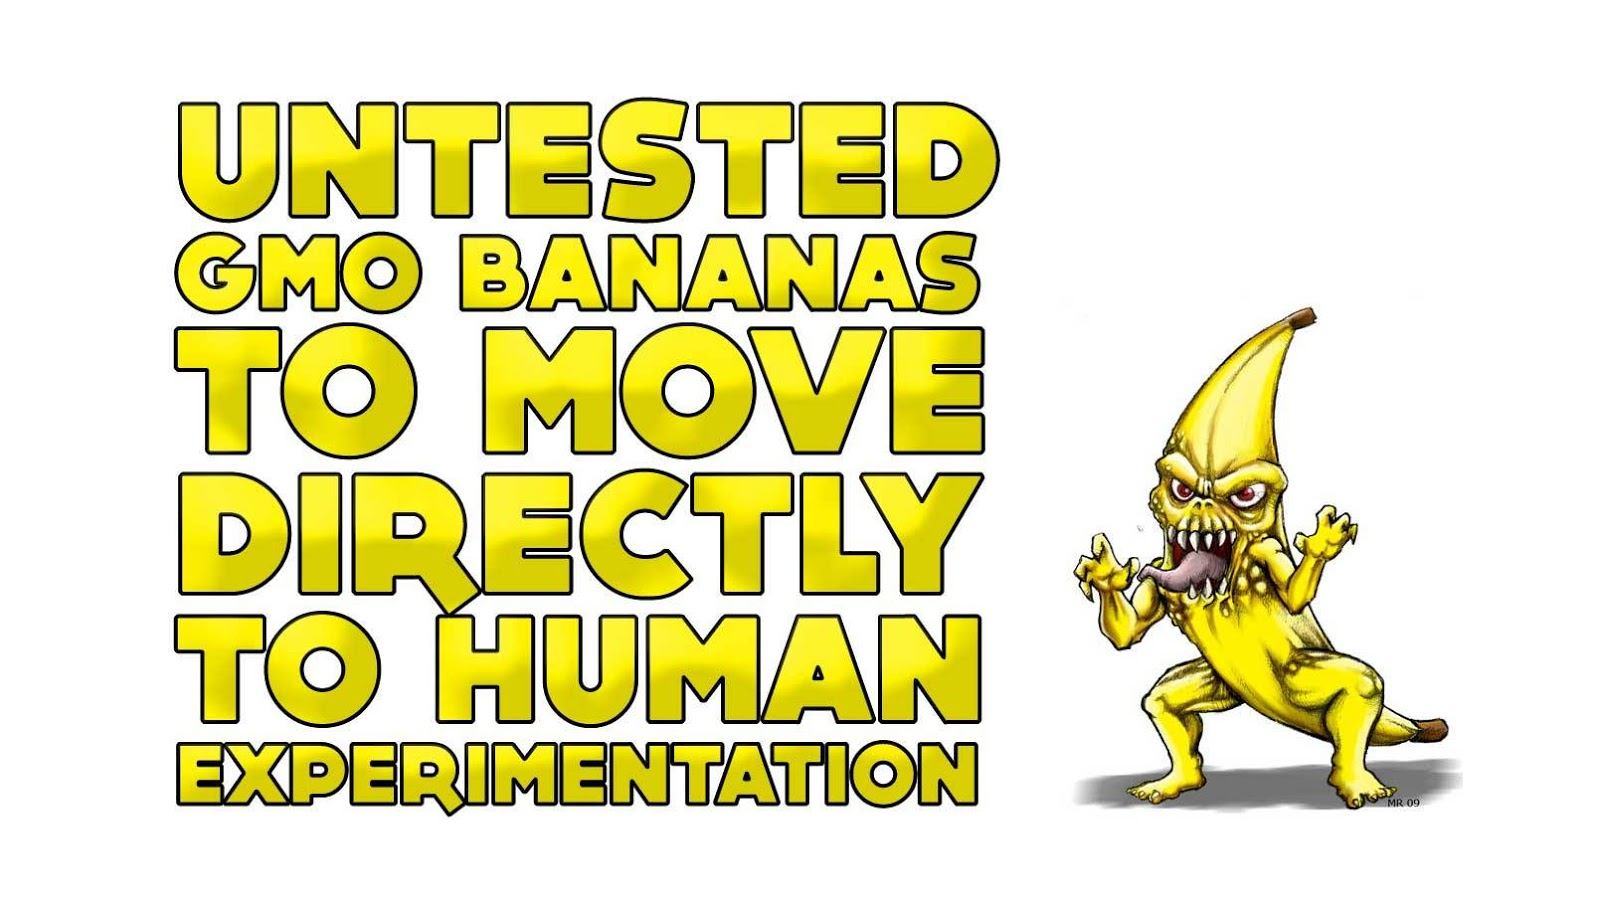 Untested GMO bananas to move directly to human experimentation